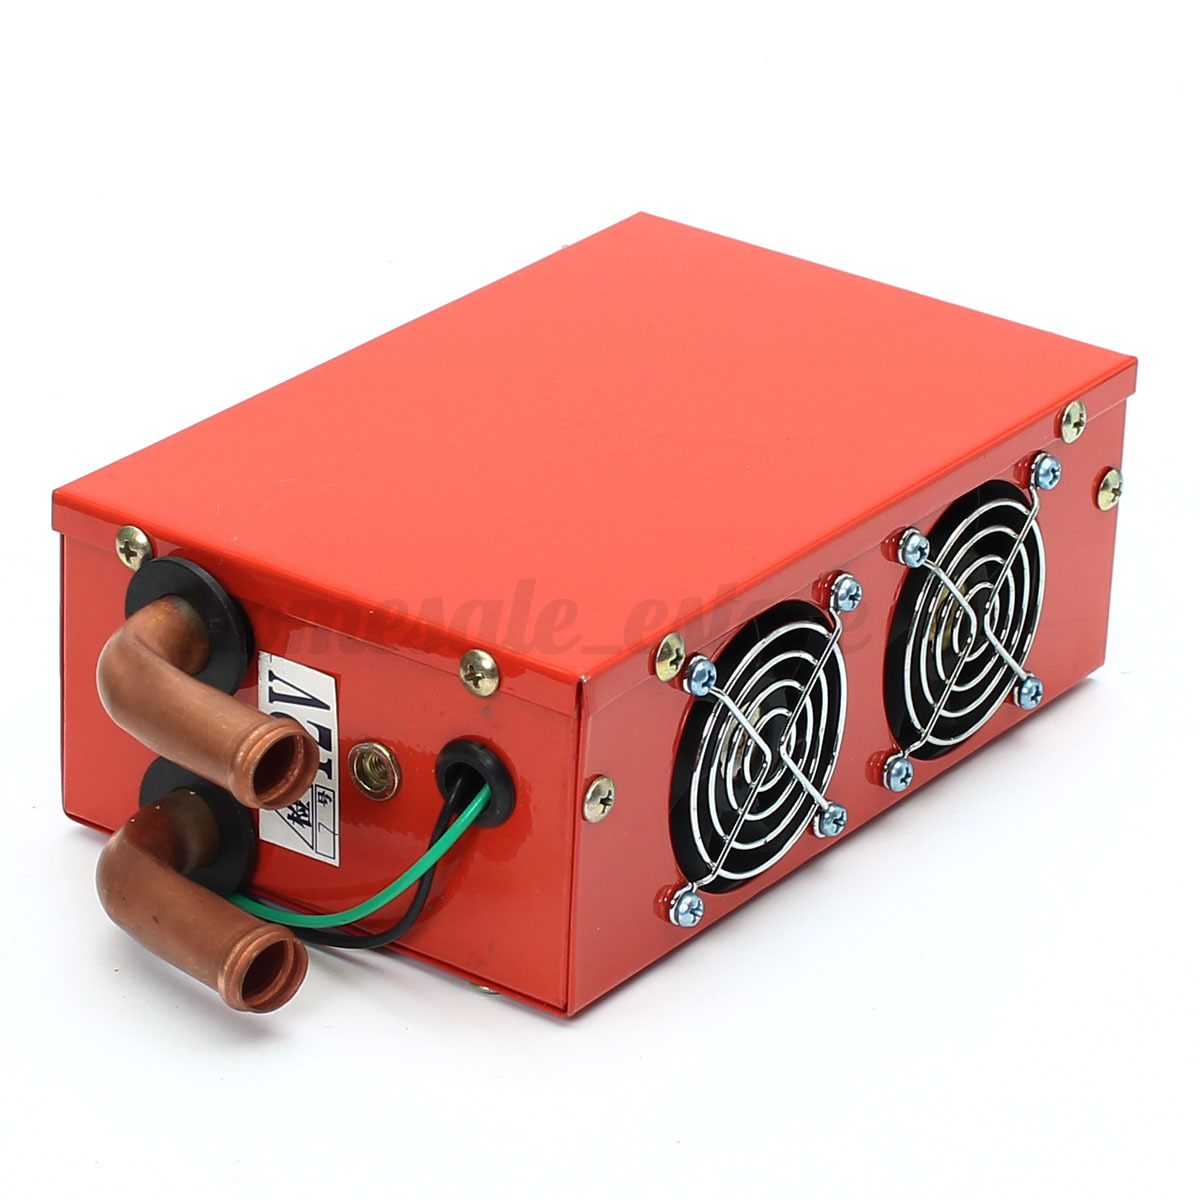 3-Hole-12V-24W-Portable-Car-Vehicle-Heating-Cooling-Heater-Demister-Defroster-1 thumbnail 3